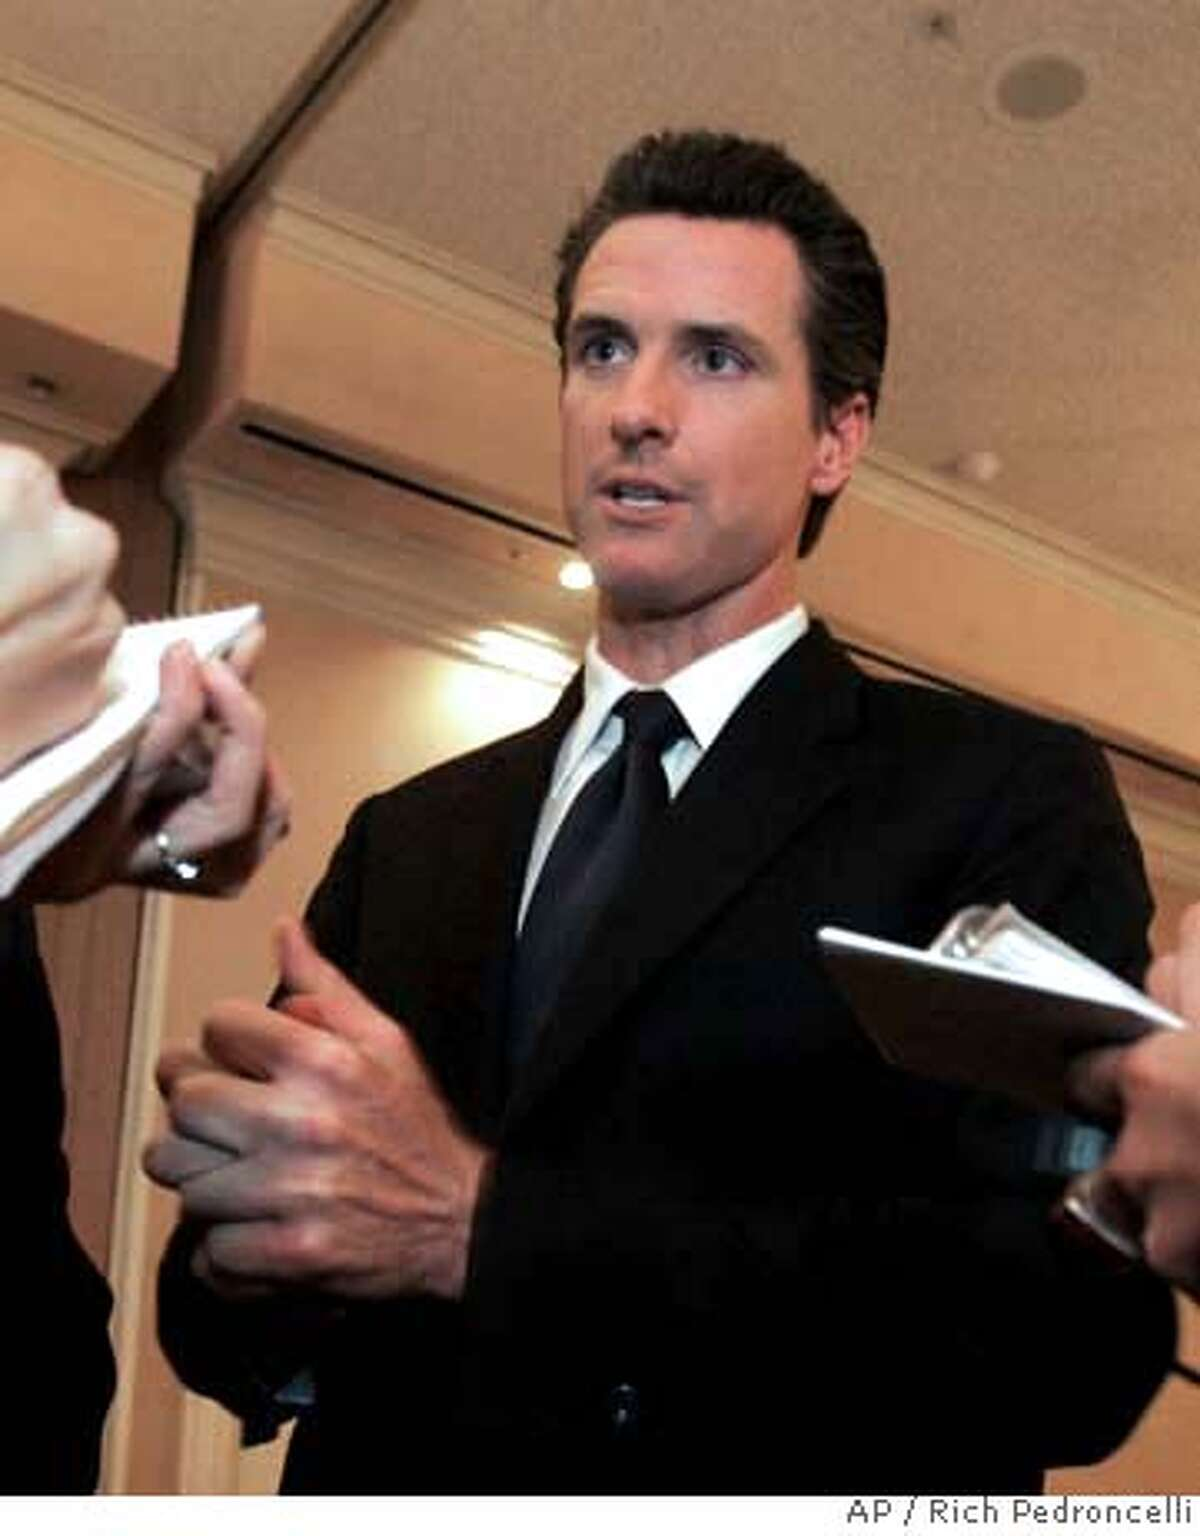 ###Live Caption:San Francisco Mayor Gavin Newsom talks to reporters after his appearance before the Sacramento Press Club in Sacramento, Calif., Tuesday, March 25, 2008. Newsom is criticizing deep cuts to California's Medi-Cal program and says he is considering a lawsuit to reinstate some of the funding. (AP Photo/Rich Pedroncelli)###Caption History:San Francisco Mayor Gavin Newsom talks to reporters after his appearance before the Sacramento Press Club in Sacramento, Calif., Tuesday, March 25, 2008. Newsom is criticizing deep cuts to California's Medi-Cal program and says he is considering a lawsuit to reinstate some of the funding. (AP Photo/Rich Pedroncelli) Ran on: 03-26-2008 San Francisco Mayor Gavin Newsom says the 10 percent reduction in Medi-Cal payments would impose an unfair burden on the citys taxpayers. Ran on: 03-26-2008 San Francisco Mayor Gavin Newsom says the 10 percent reduction in Medi-Cal payments would impose an unfair burden on the citys taxpayers.###Notes:Gavin Newsom###Special Instructions: